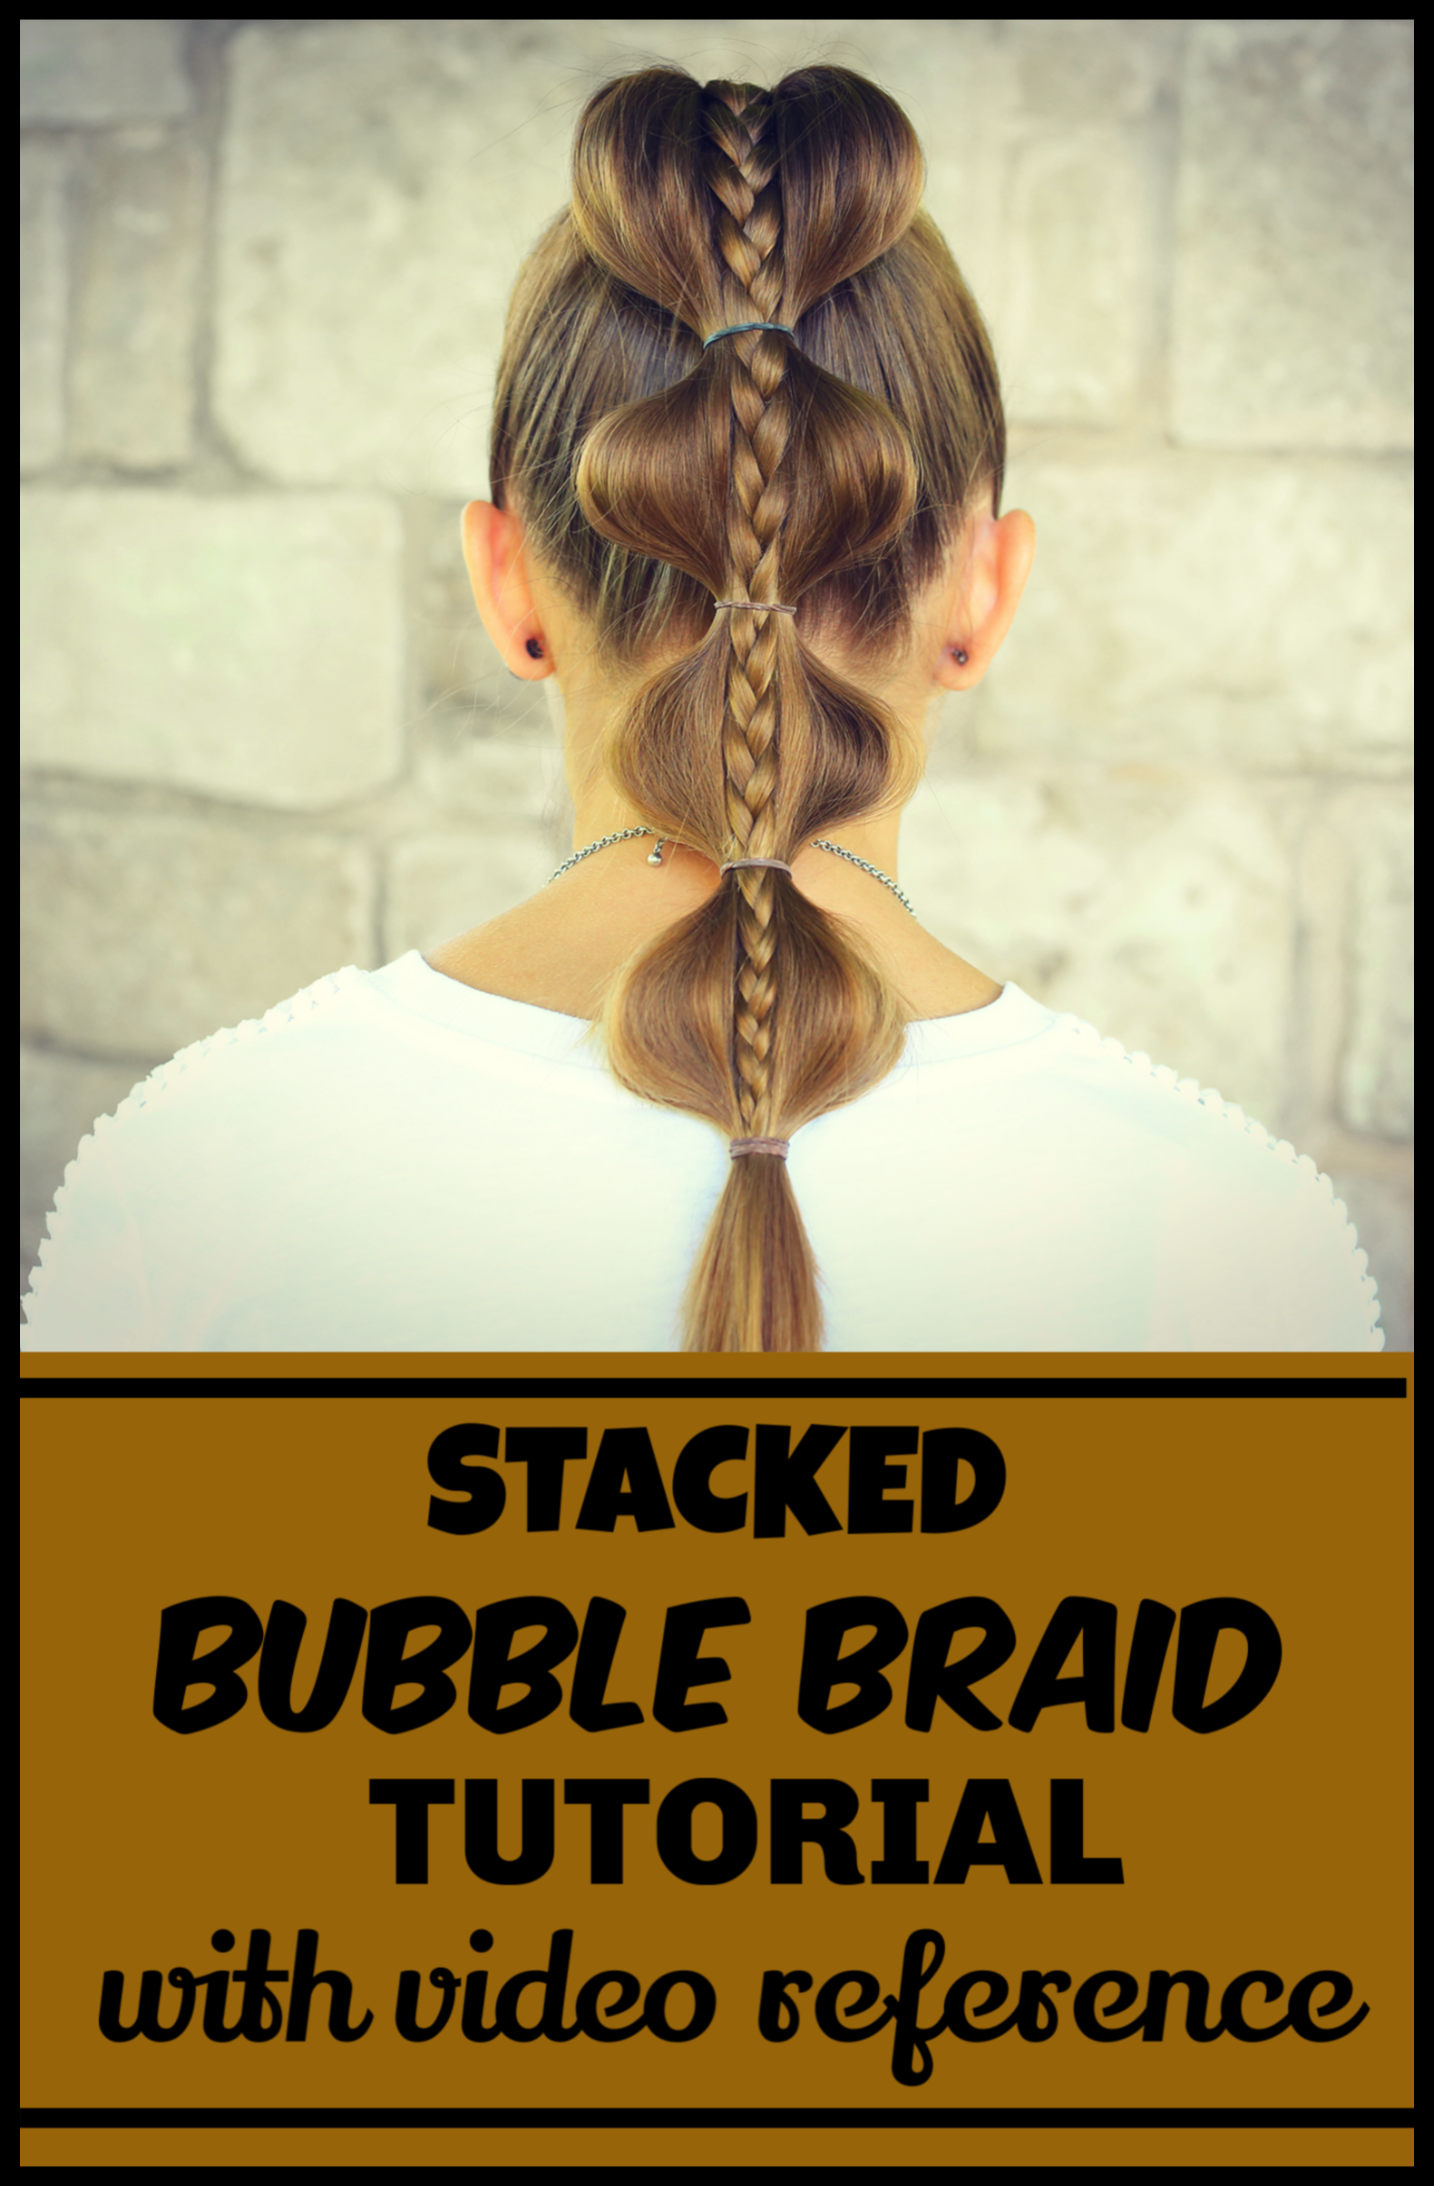 Braids for the Sport Softball #boxbraids #BoxBraids #boxerbraids #Braid